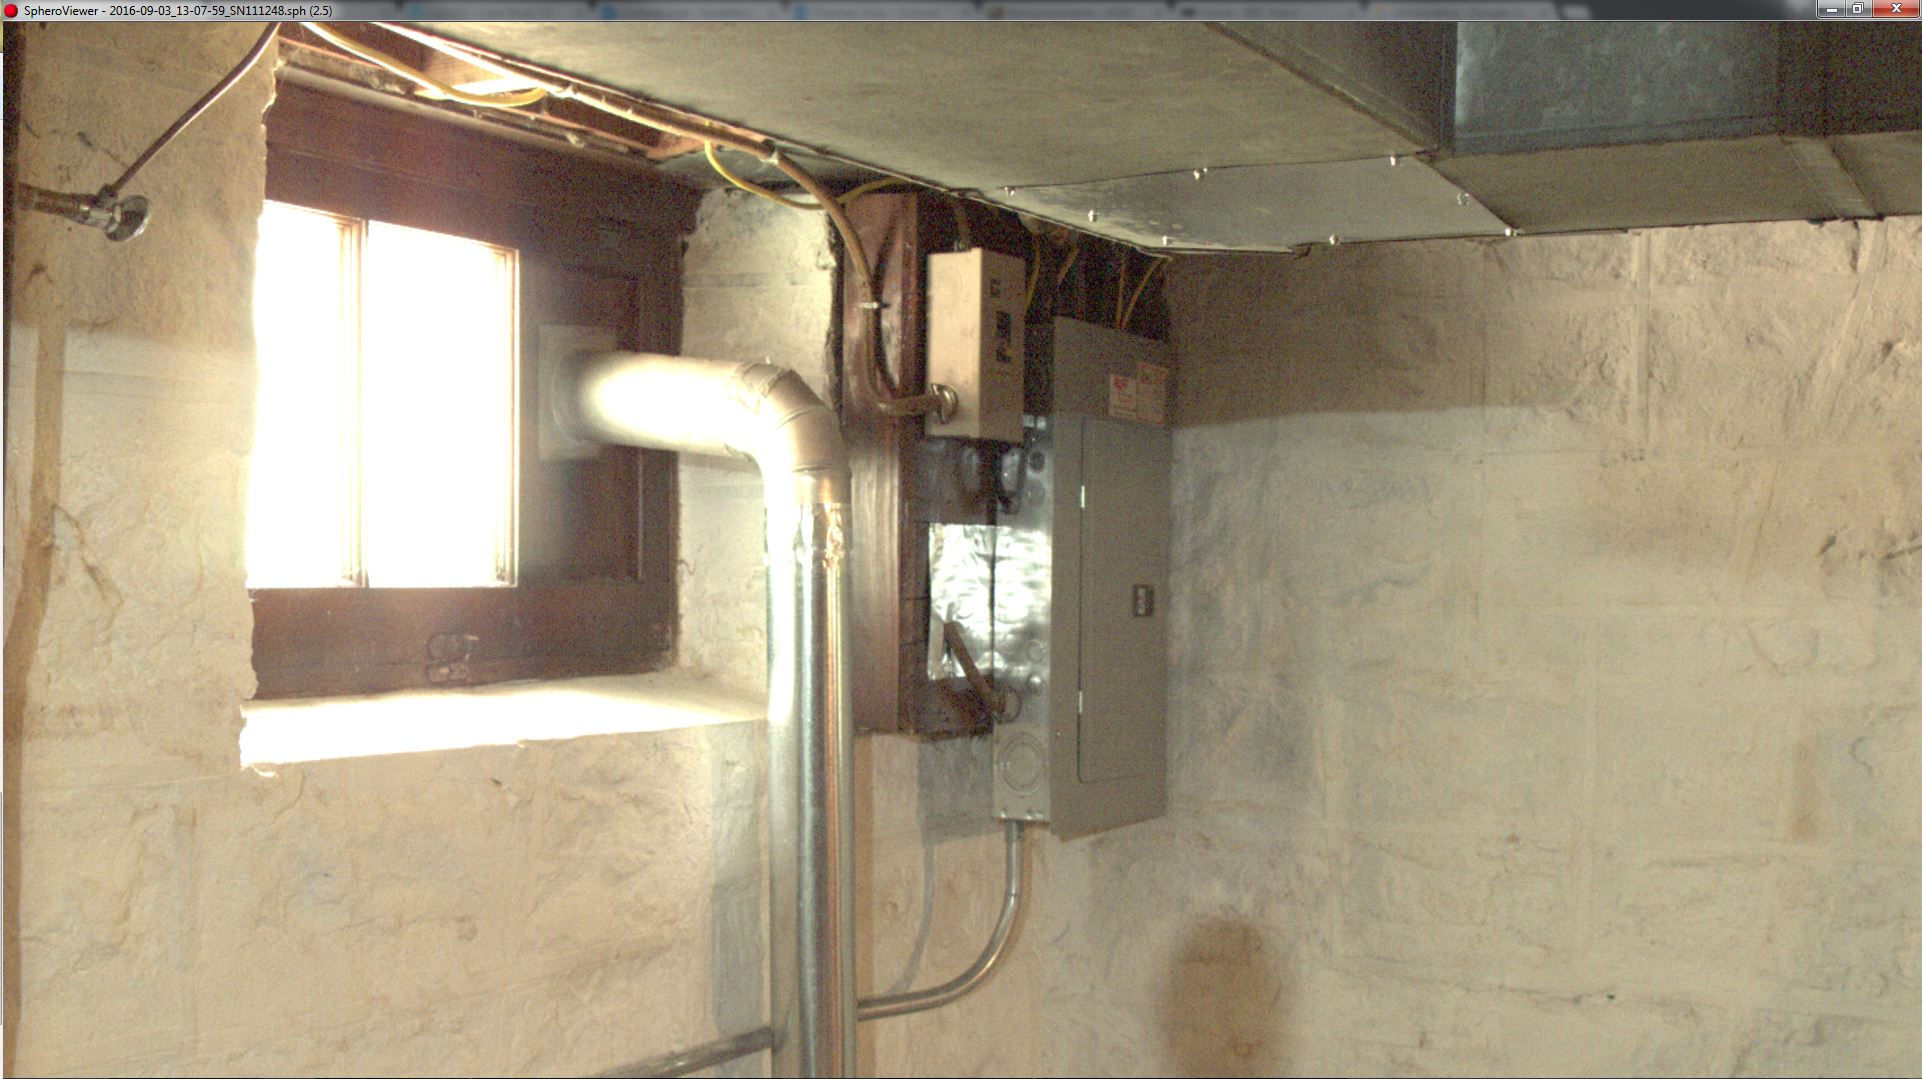 fuse box basement ideas 3.02.02 – case study 03 – nctech istar fusion vs spheron ... #12